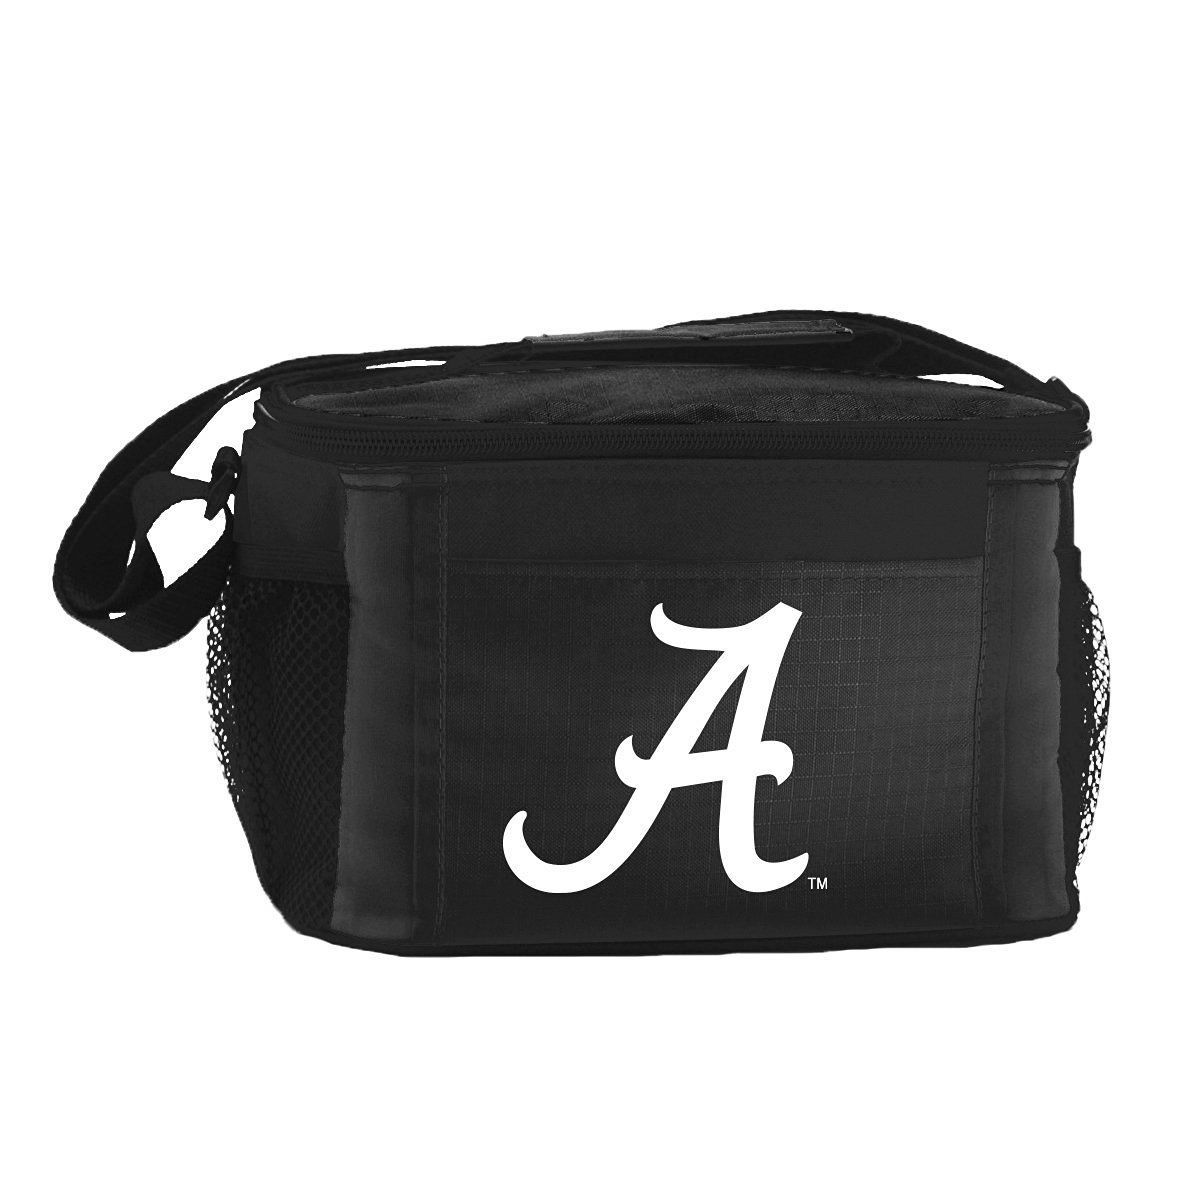 ALABAMA CRIMSON TIDE LUNCH TOTE 6 PK BEER SODA TEAM LOGO KOOLER BAG NCAA